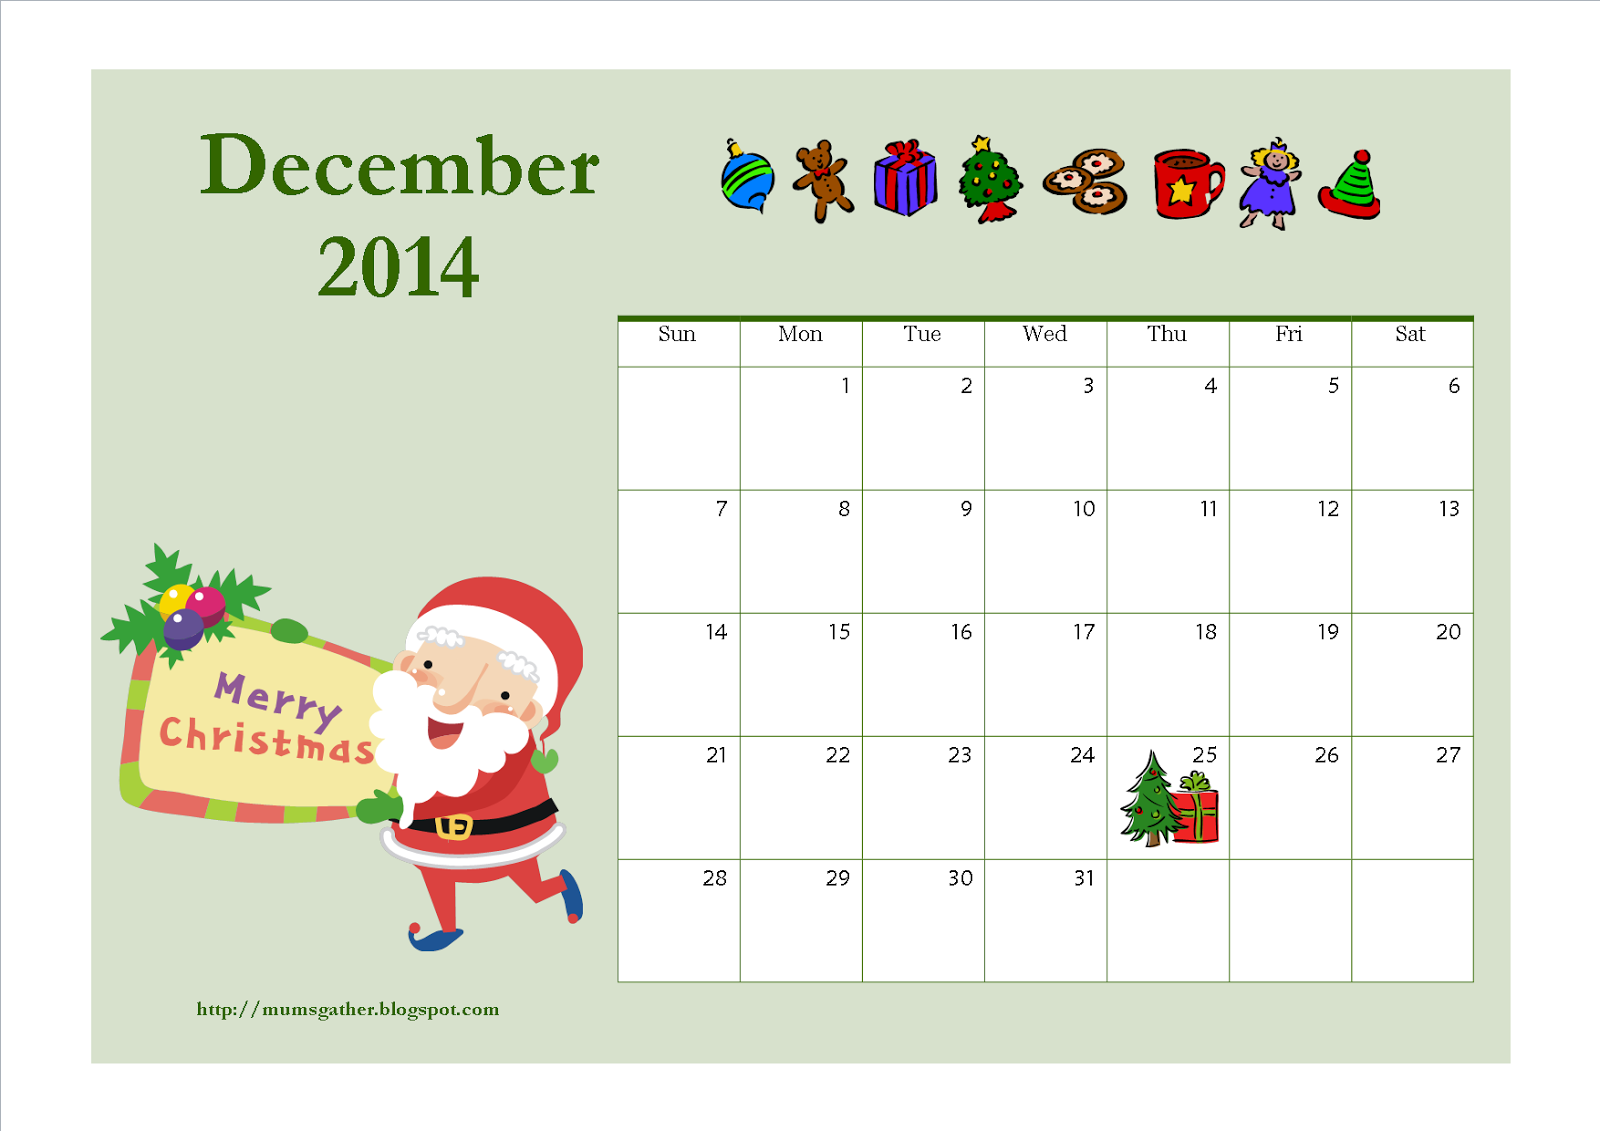 Christmas Calendar Pictures : Free printable december calendar for kids santa